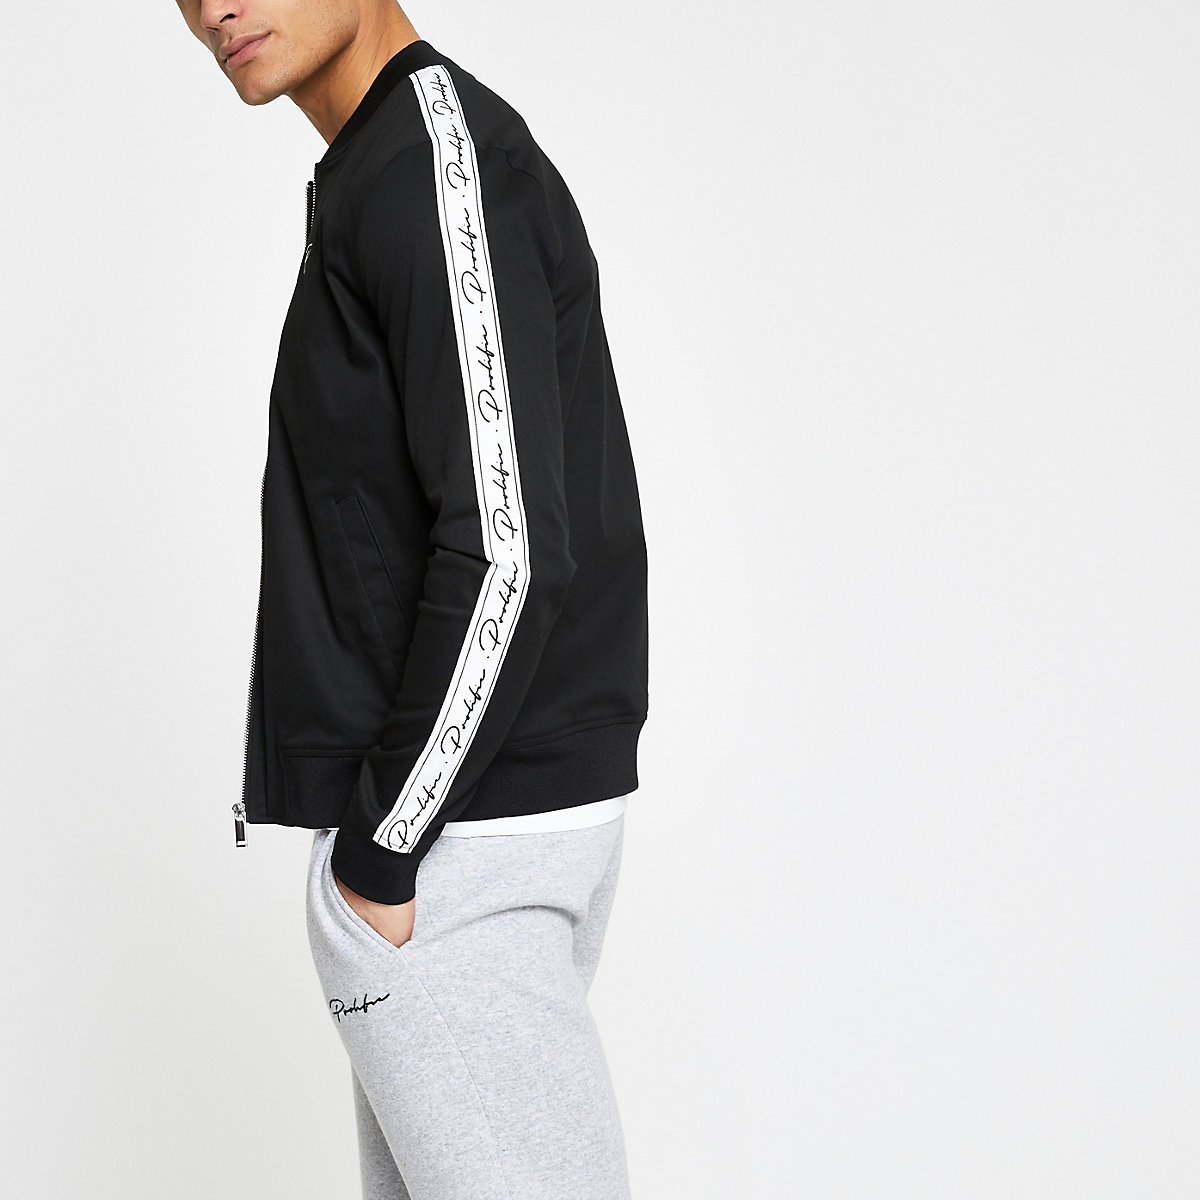 Black 'Prolific' muscle fit bomber jacket